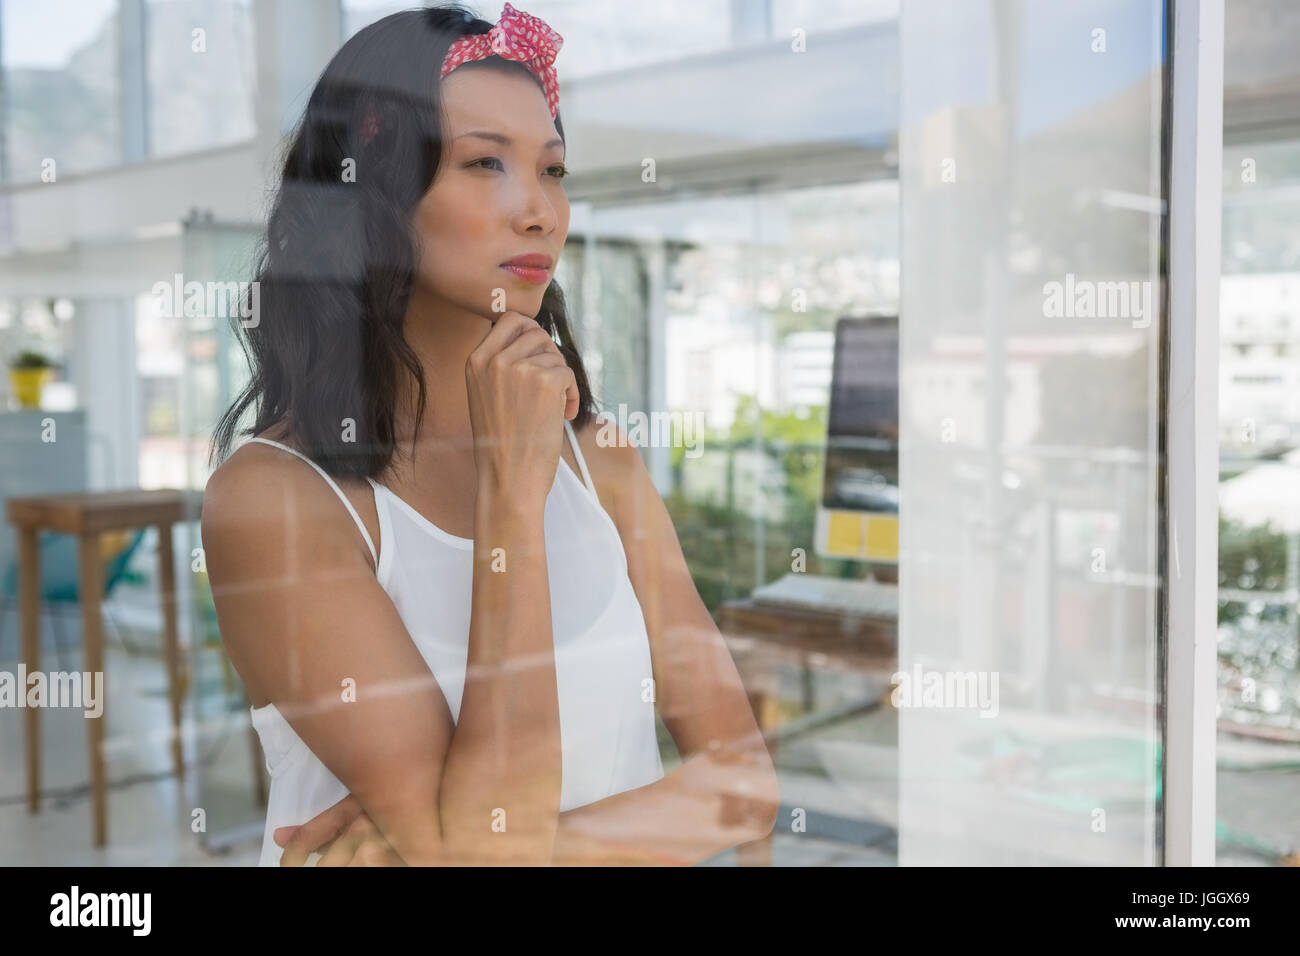 Thoughtful businesswoman looking through window seen through glass - Stock Image